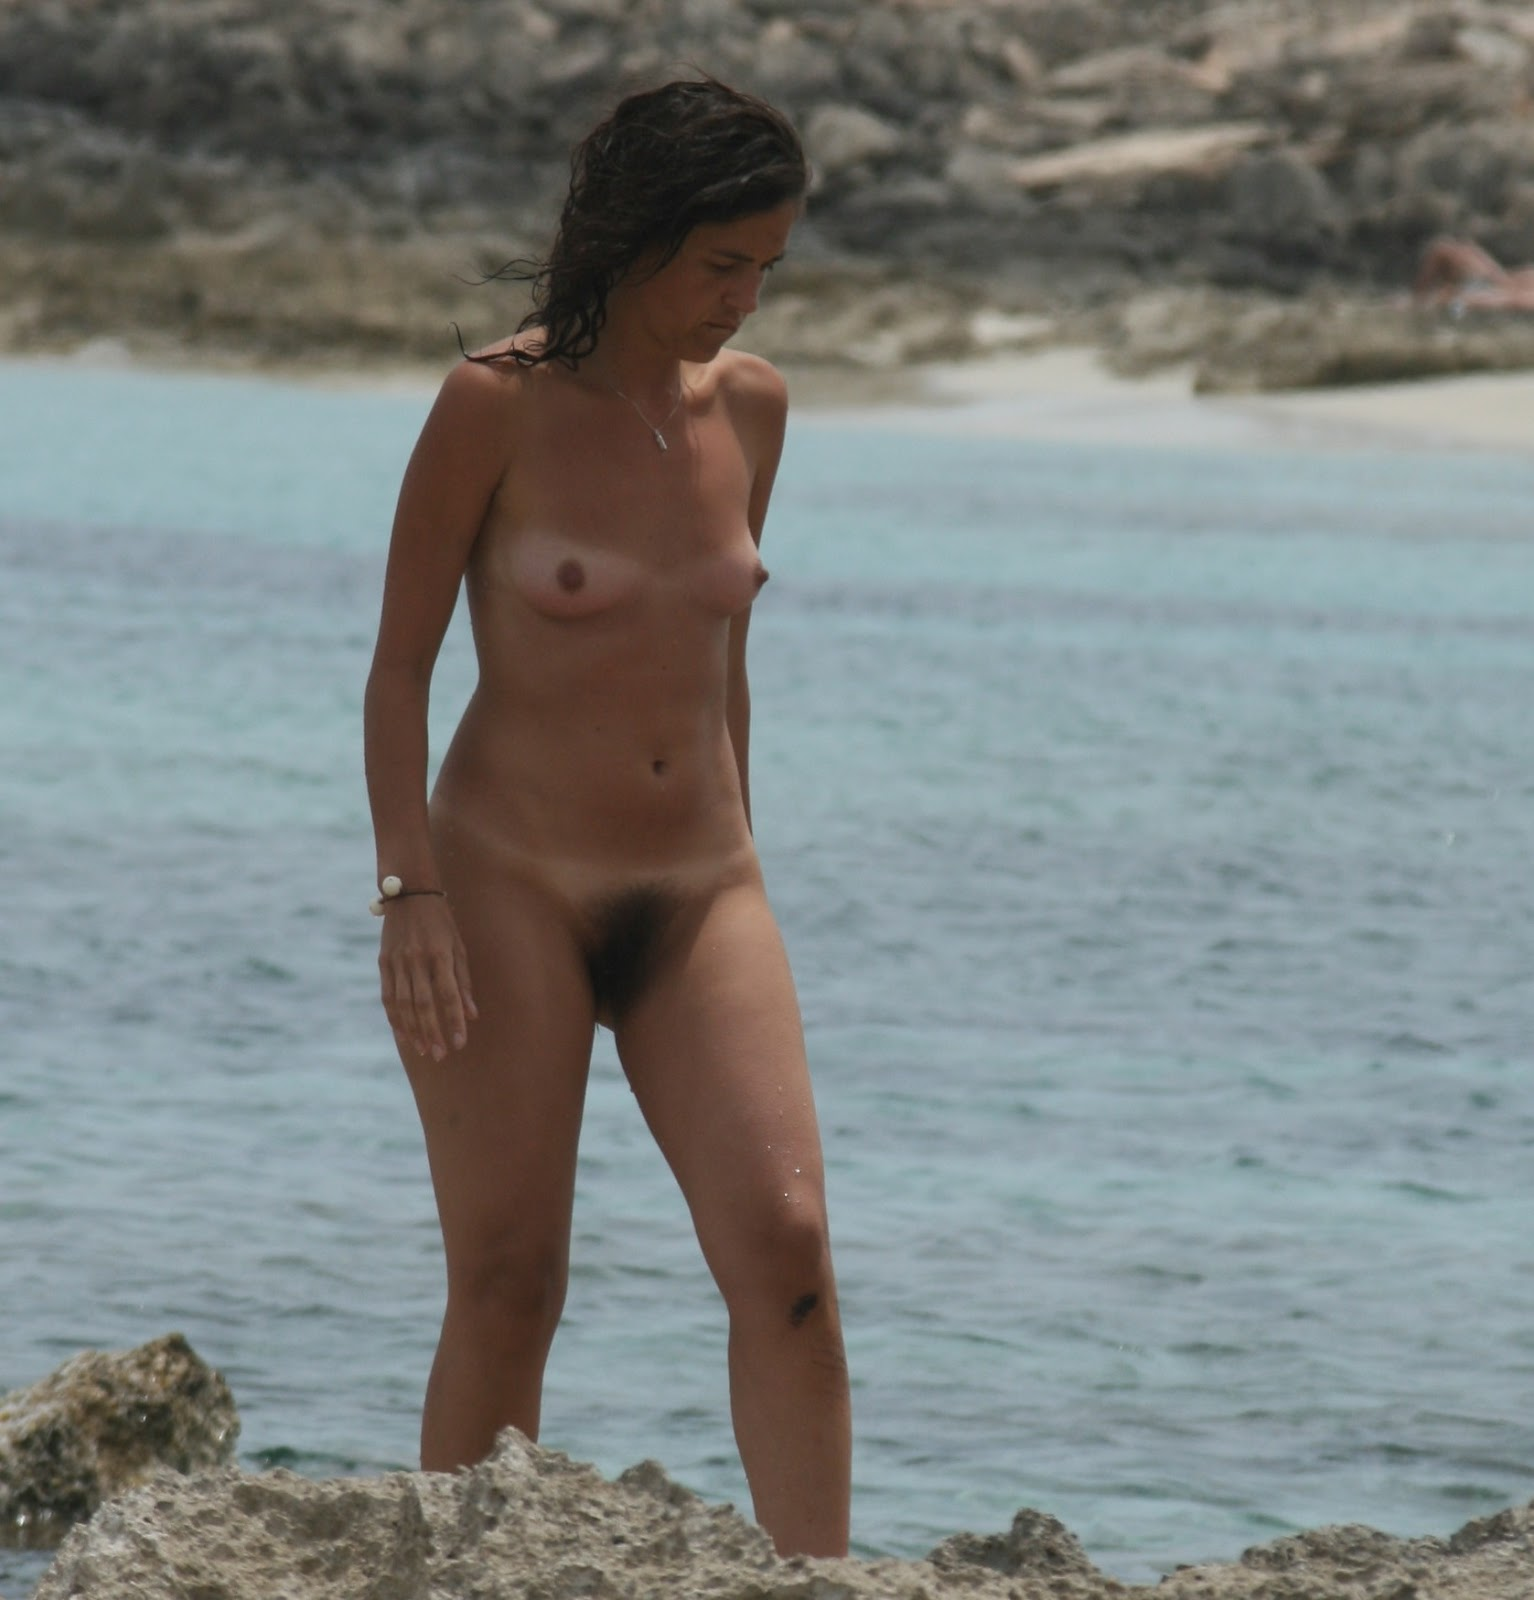 Nude Beach for You - high quality candid photo and video